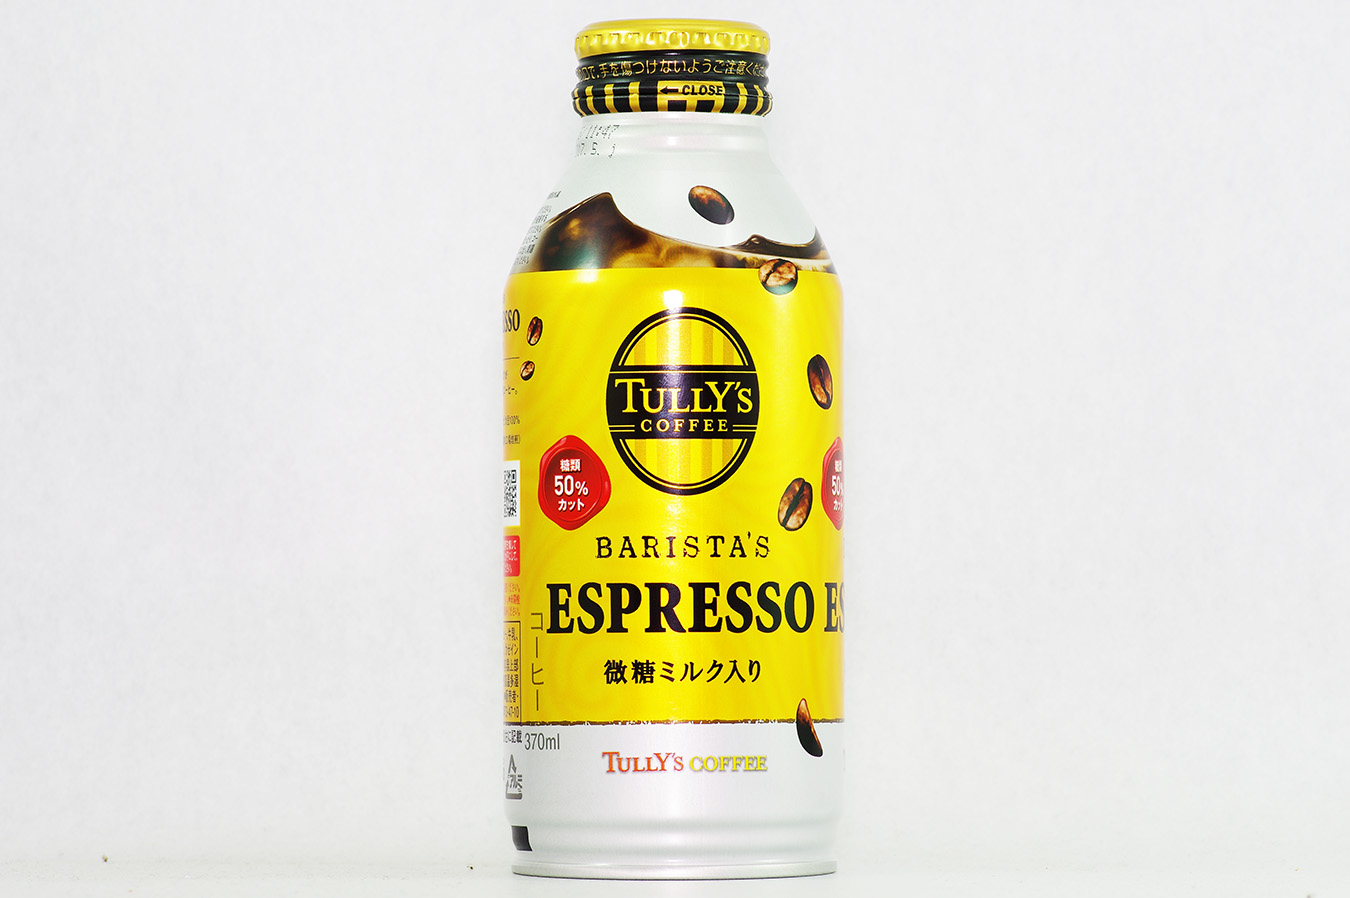 TULLY'S COFFEE BARISTA'S ESPRESSO